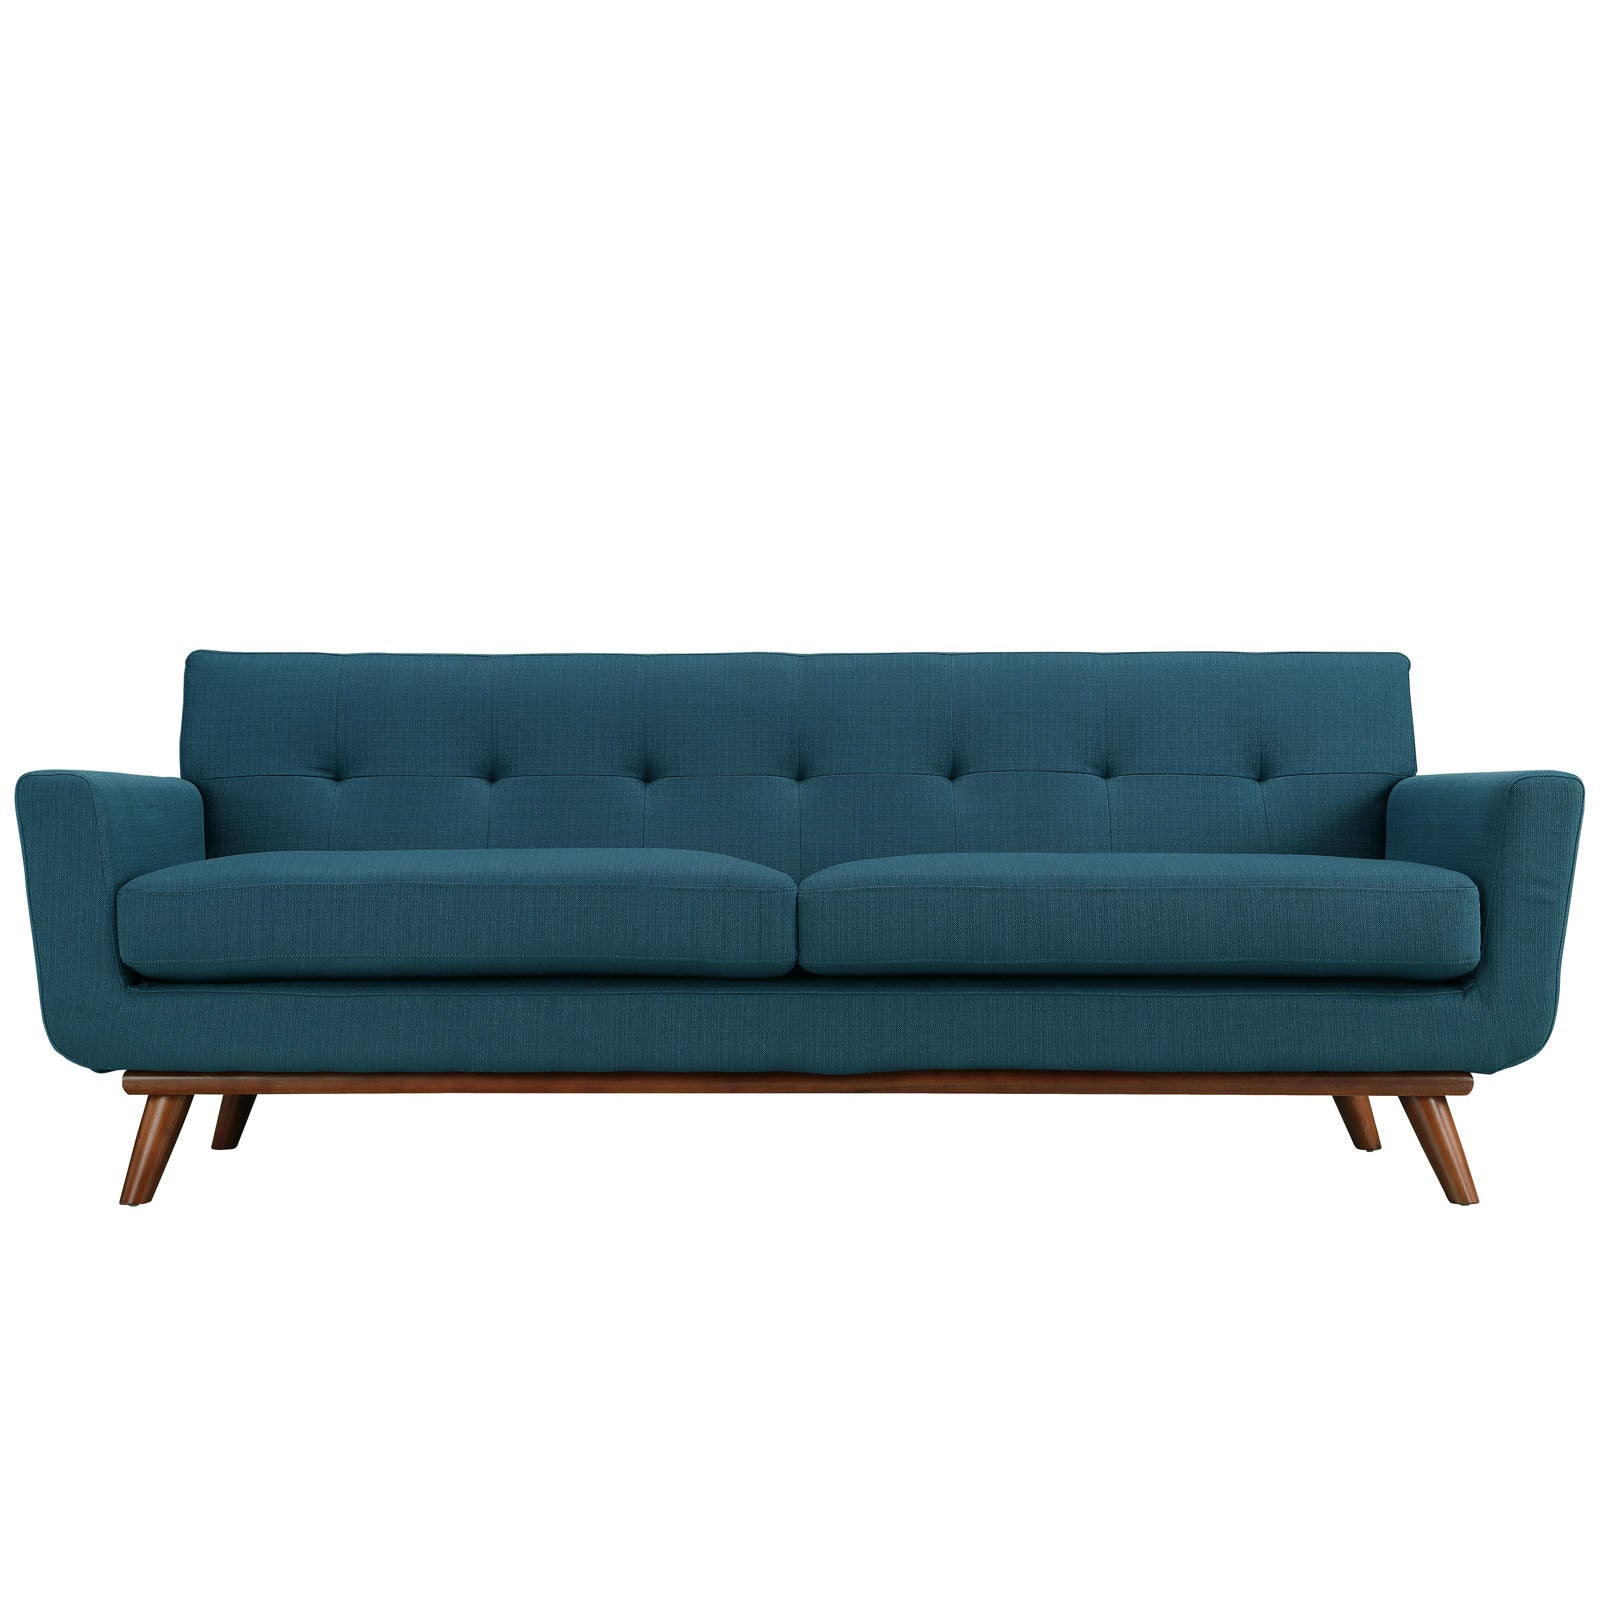 Marvelous Ronald Sofa Modern Sofa Mid Century Modern Sofa Tight Creativecarmelina Interior Chair Design Creativecarmelinacom